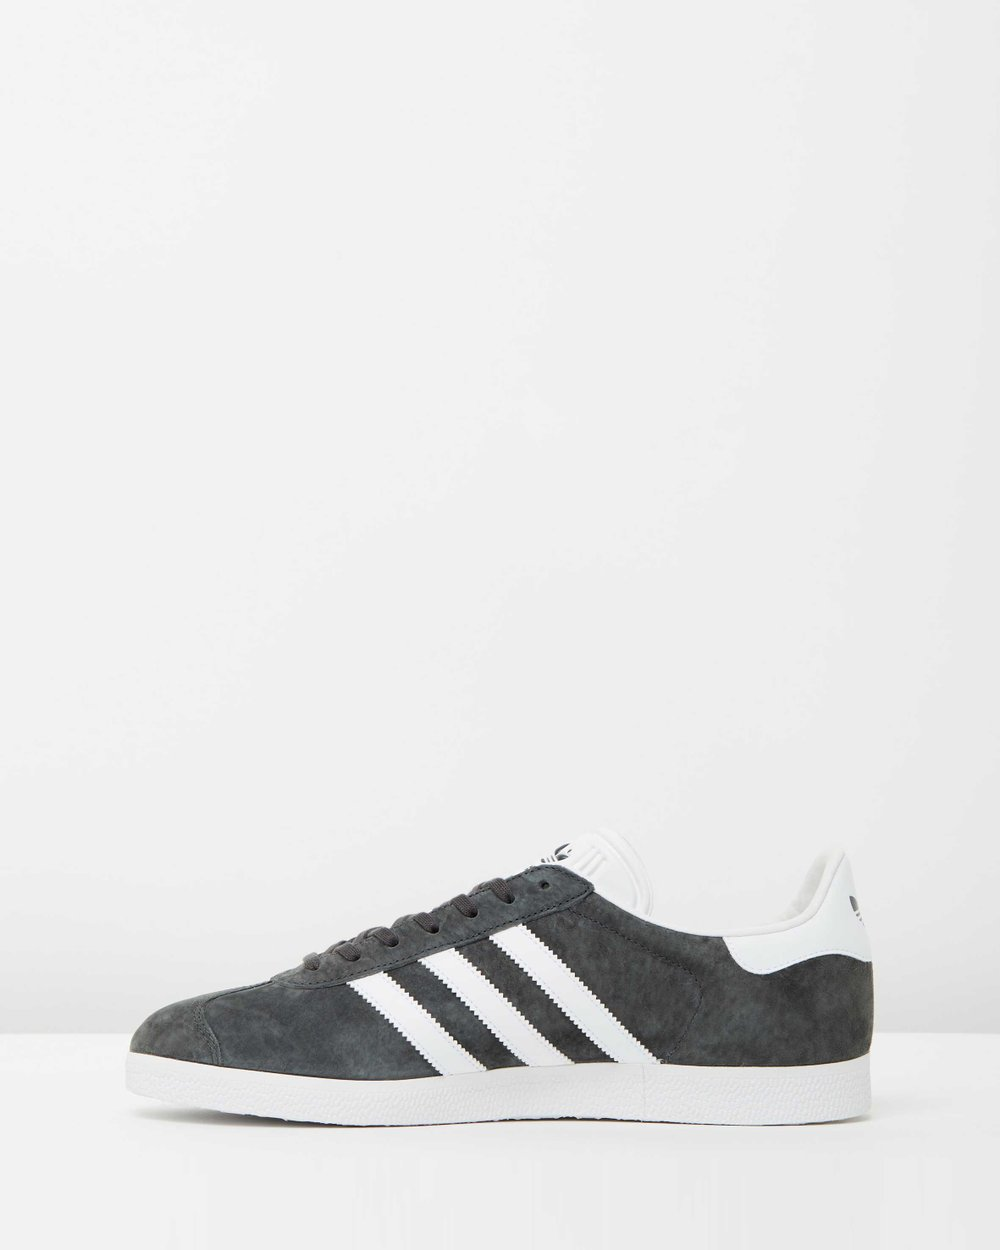 77c3c74864d9 Gazelle - Unisex by adidas Originals Online